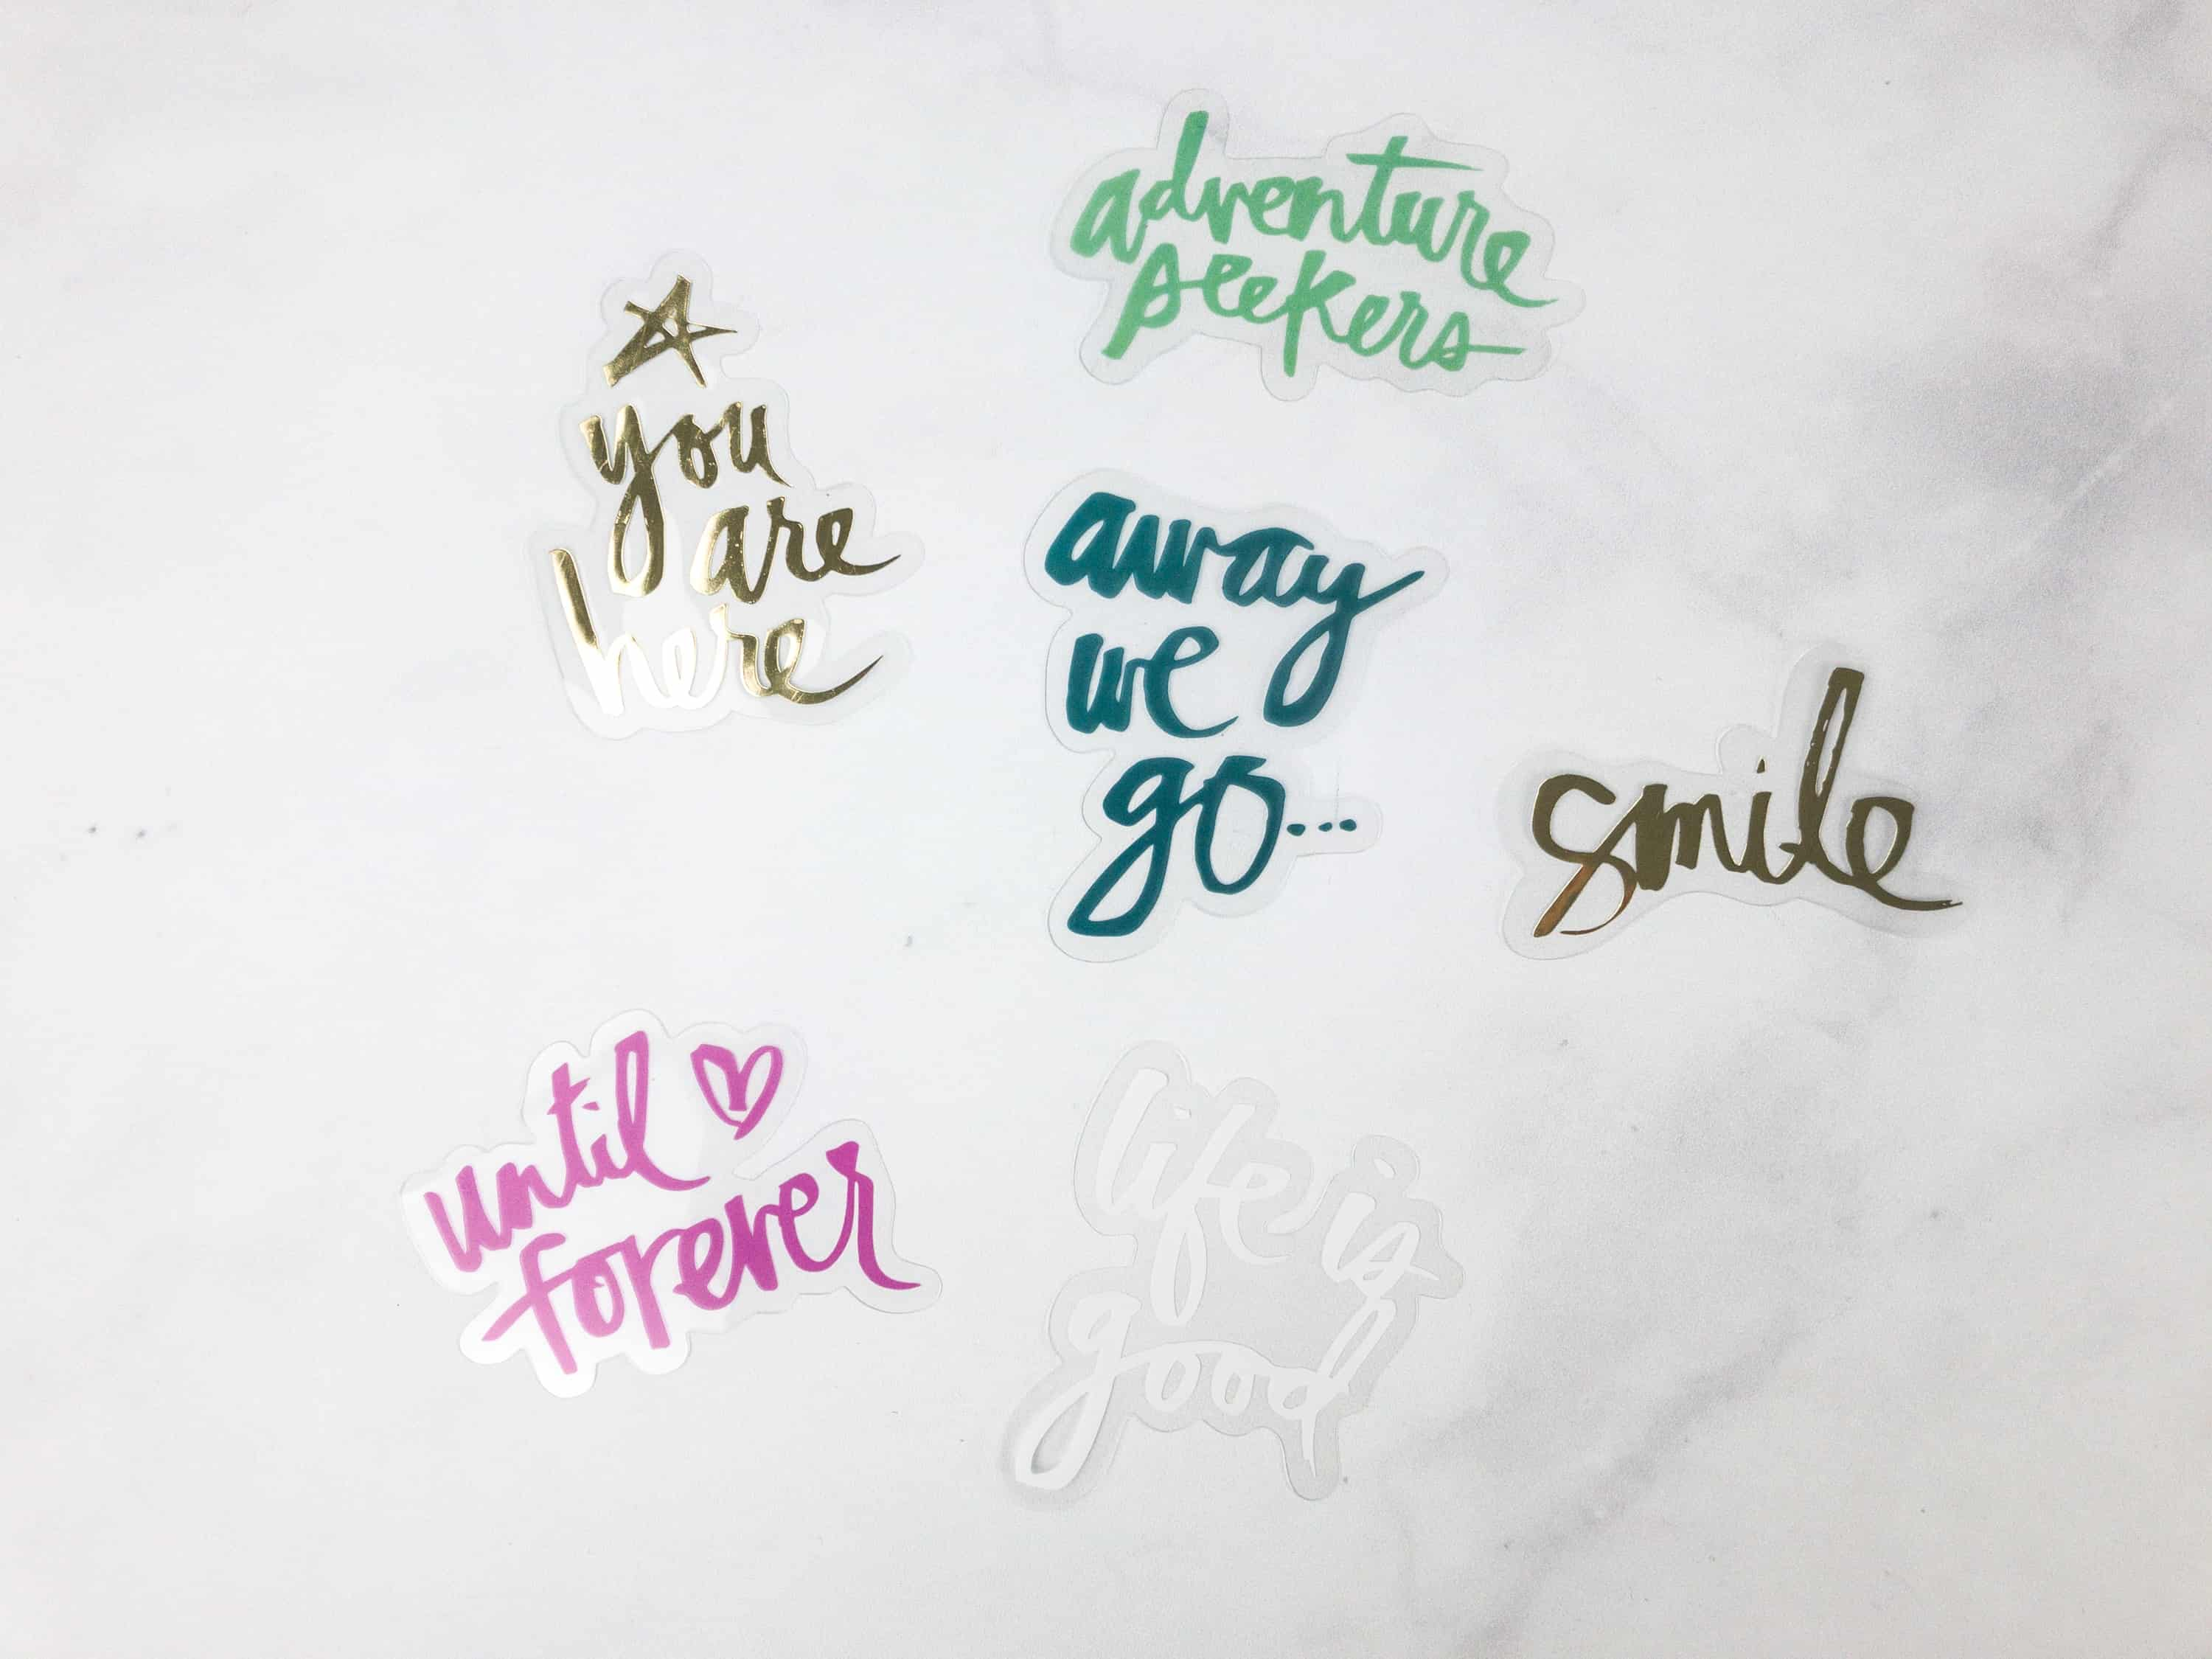 It Contains Cool Statement Stickers That You Can Use To Decorate The Binder  Or The Pages You Would Like To Attach To It.